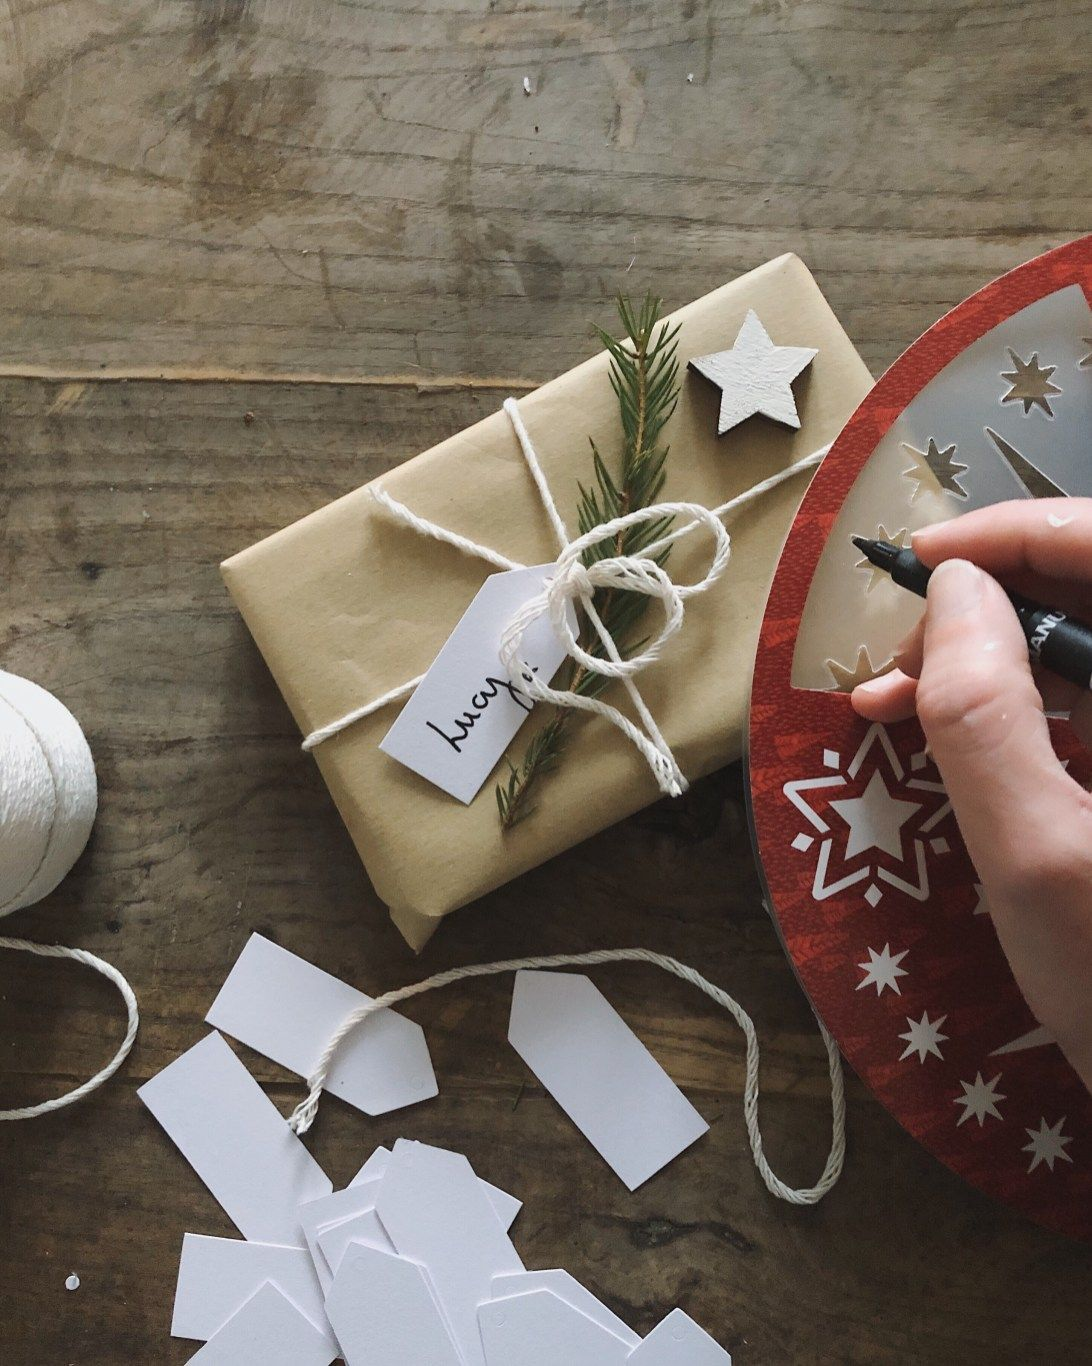 Buy Top 5 gifts holiday for aesthetes picture trends